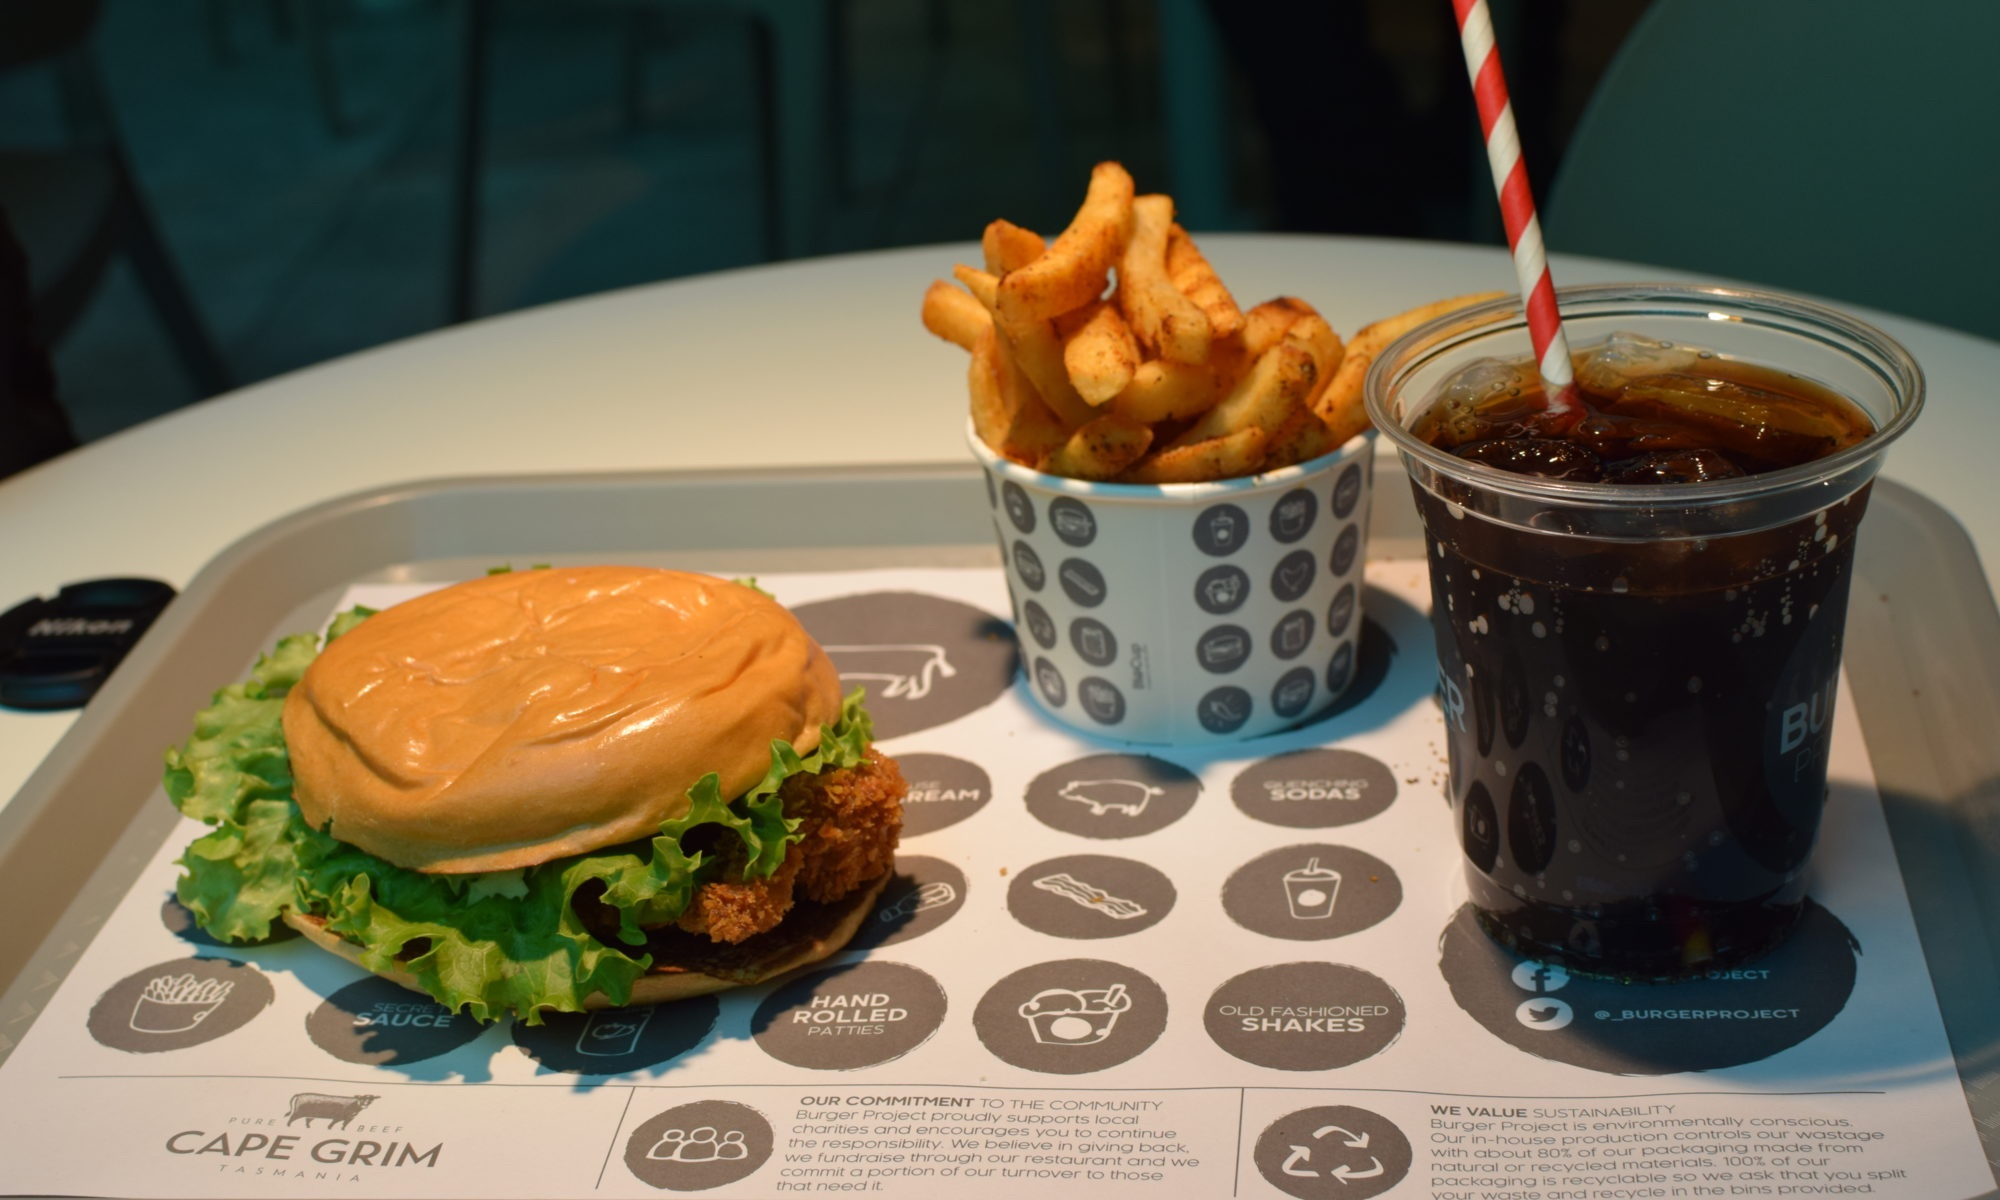 Old Thomas's perfect diet: Burger, Fries and Coke (with free refills!)